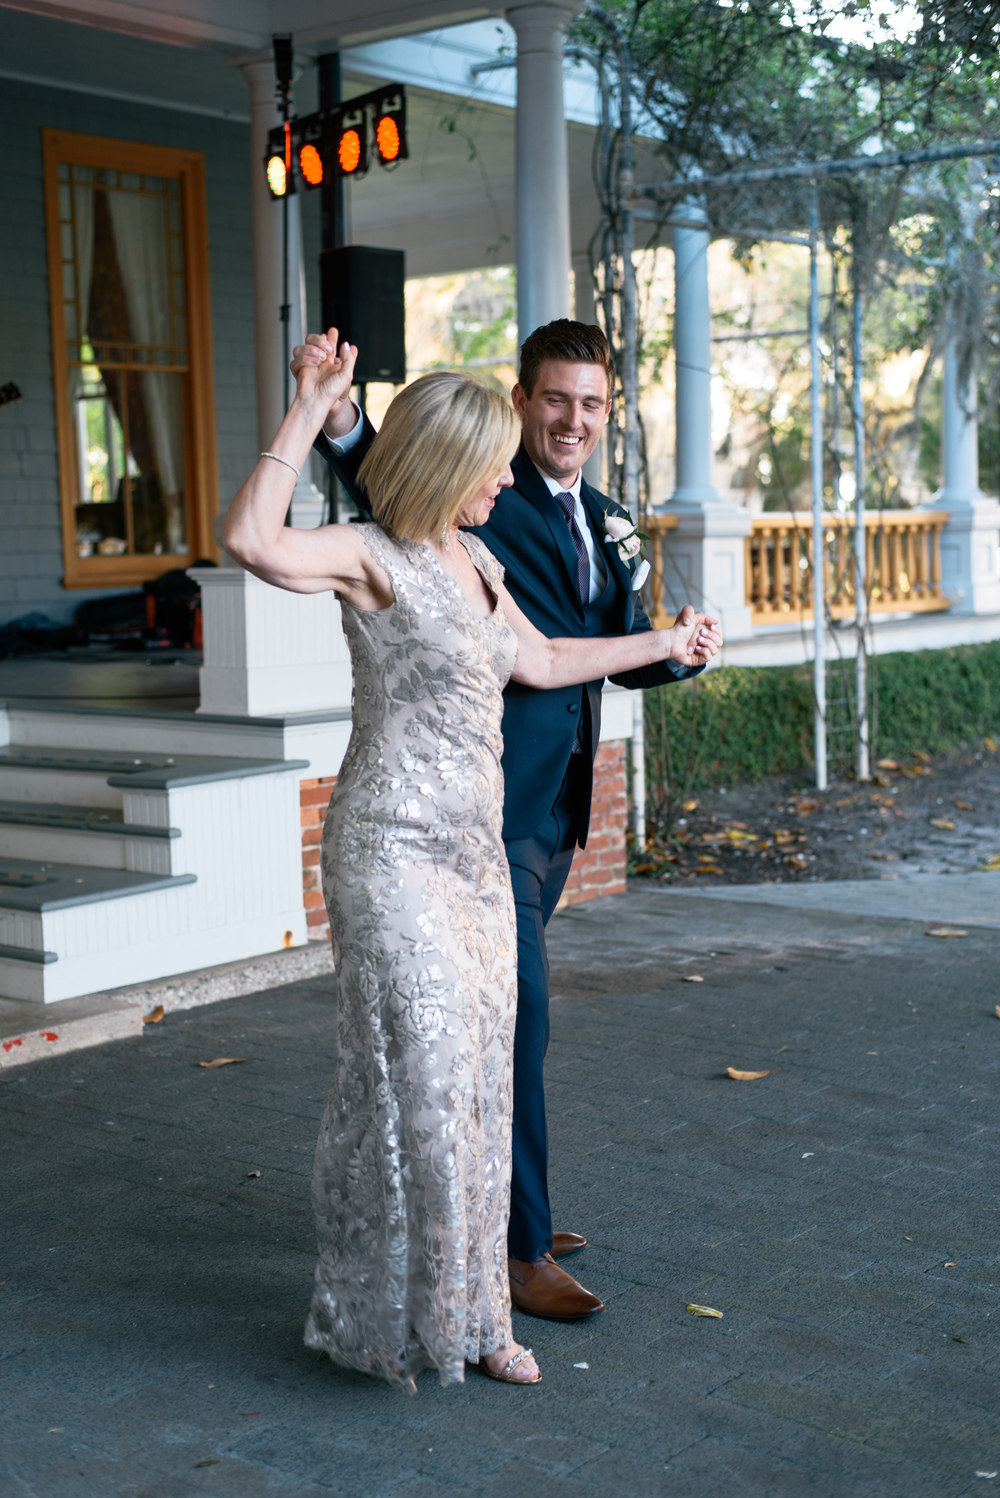 kadi-and-matt-carroll-april-9-2016-jekyl-island-wedding-m-newsom-photography- (342 of 484).jpg